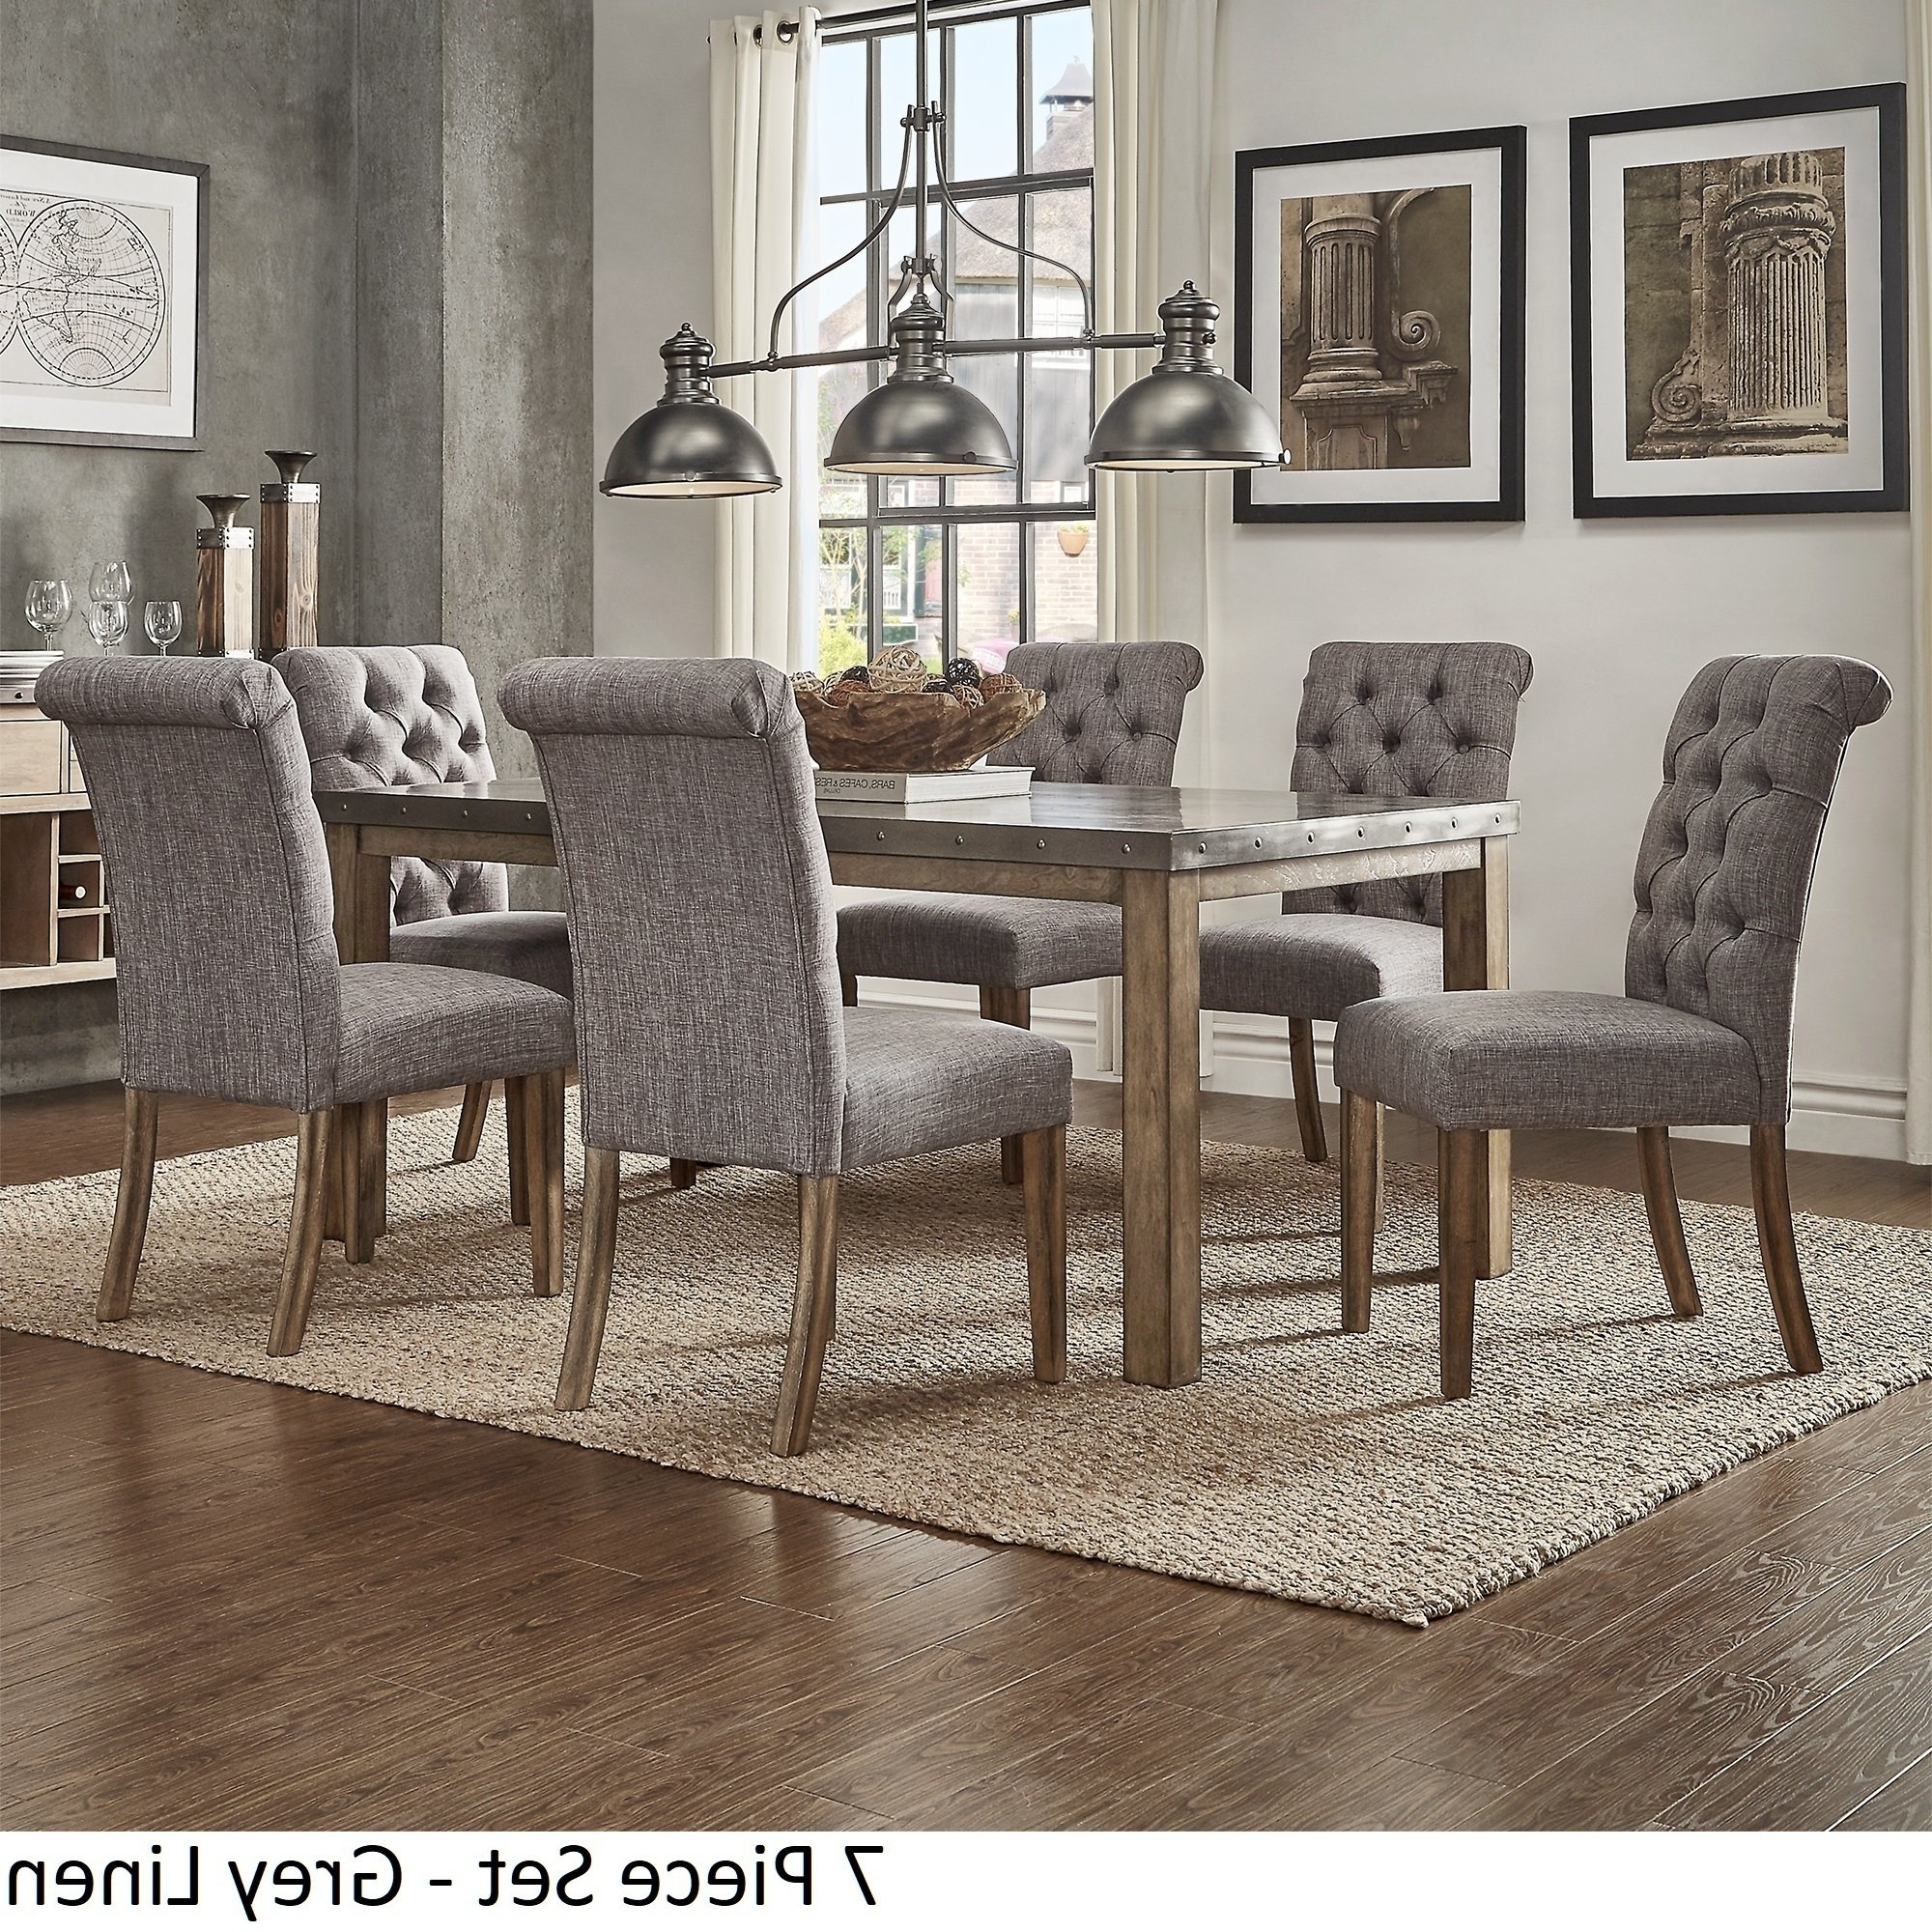 Shop Cassidy Stainless Steel Top Rectangle Dining Table Set Regarding Favorite Cheap Dining Tables Sets (View 7 of 25)